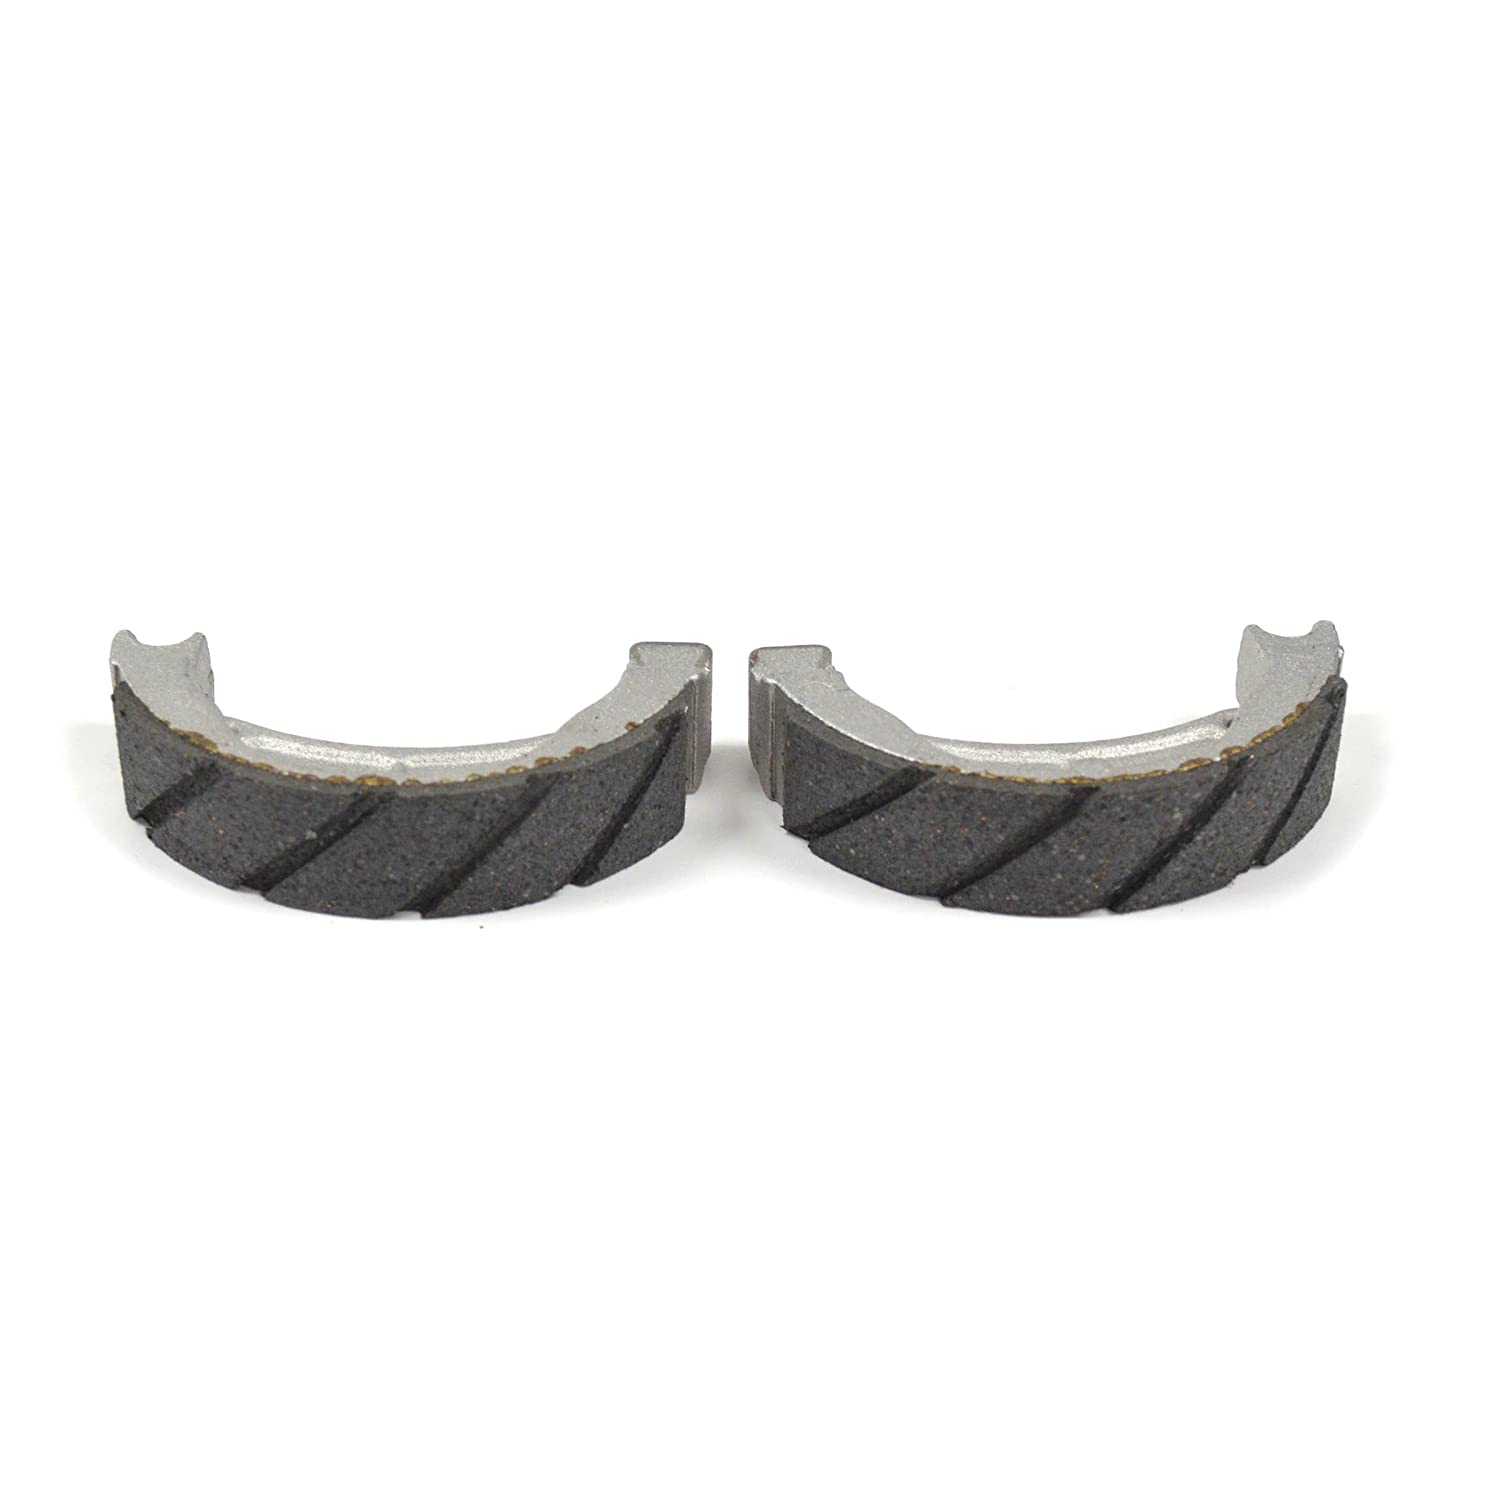 Kawasaki KX60 83-03 Rear Grooved Brake Shoes by Niche Cycle Supply